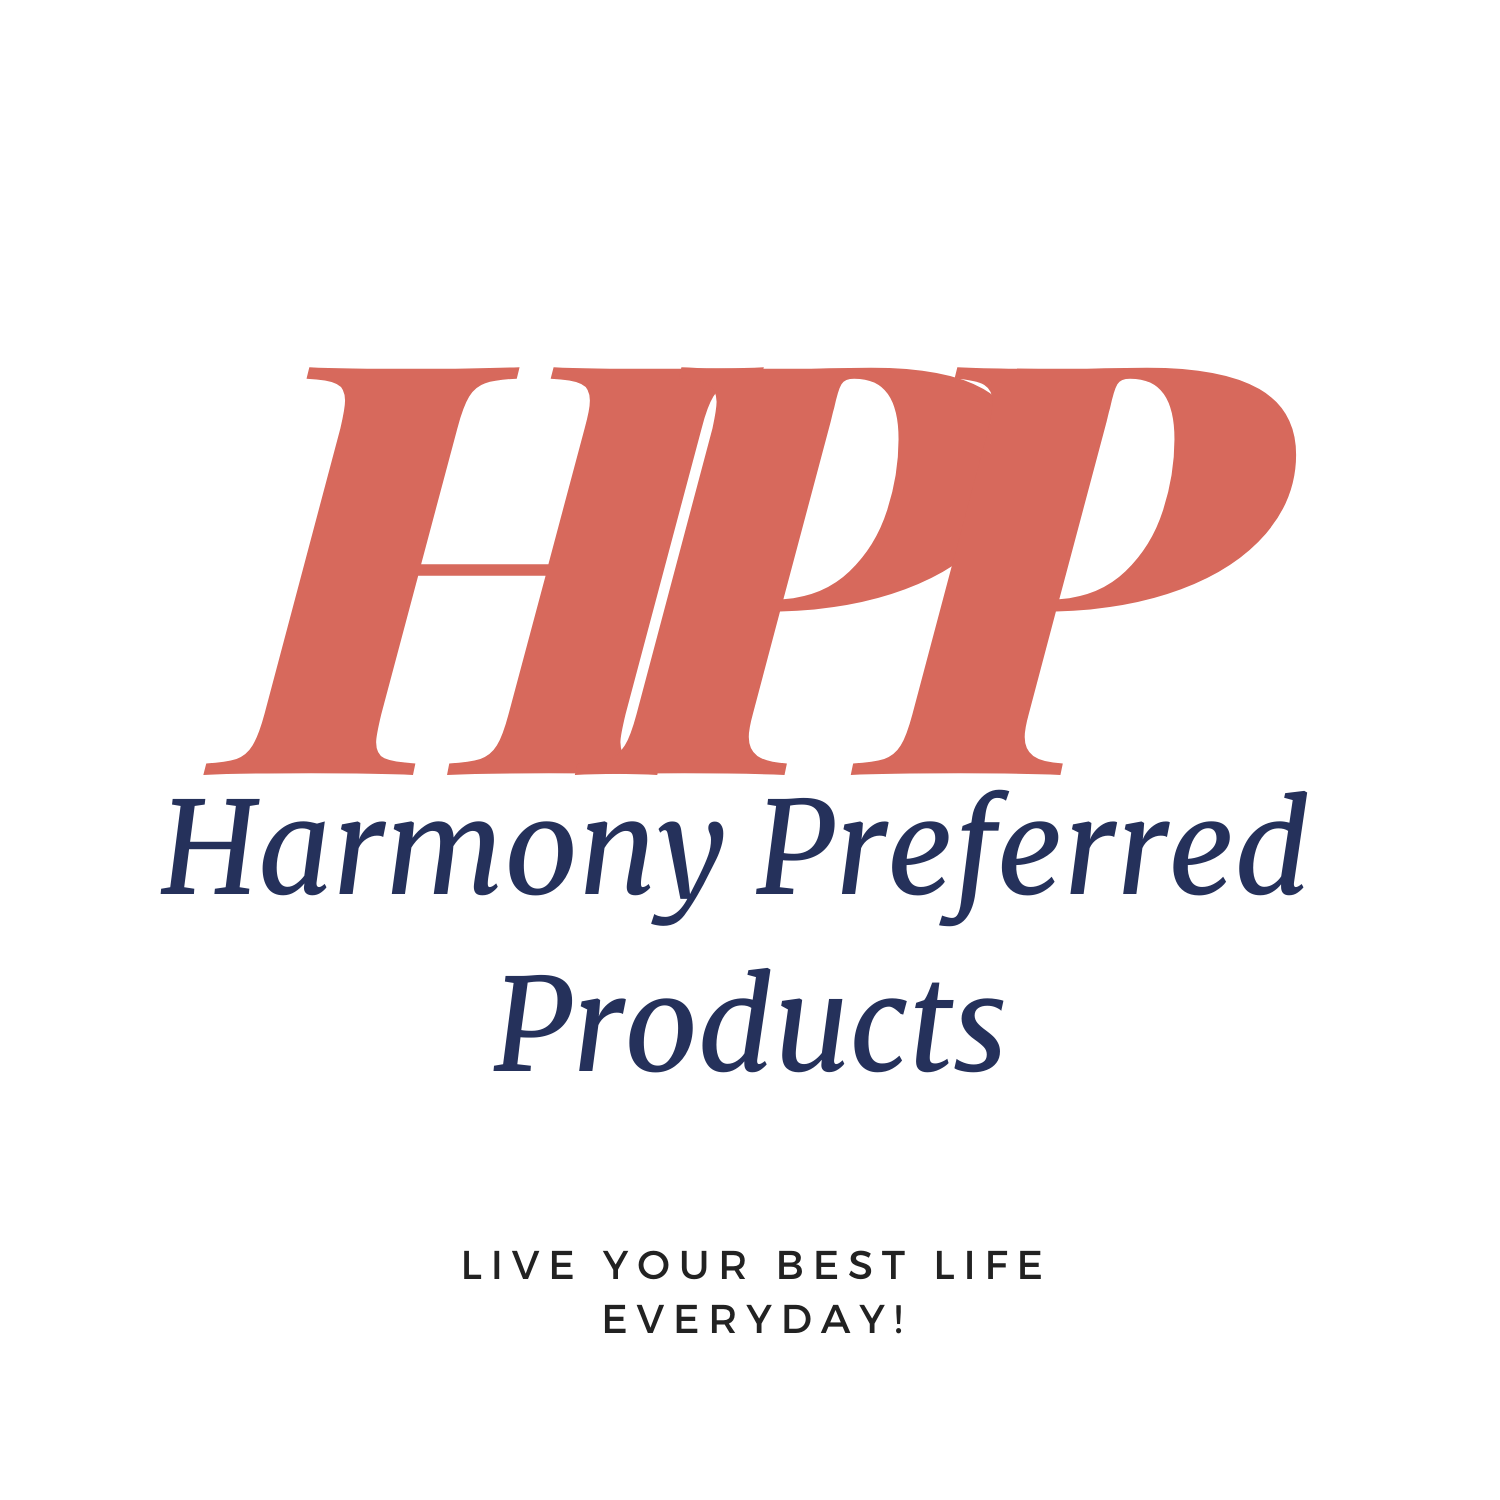 Harmony Preferred Products Is Proud To Announce The Launch Of Their Health And Wellness Website - Harmonypreferred.Com